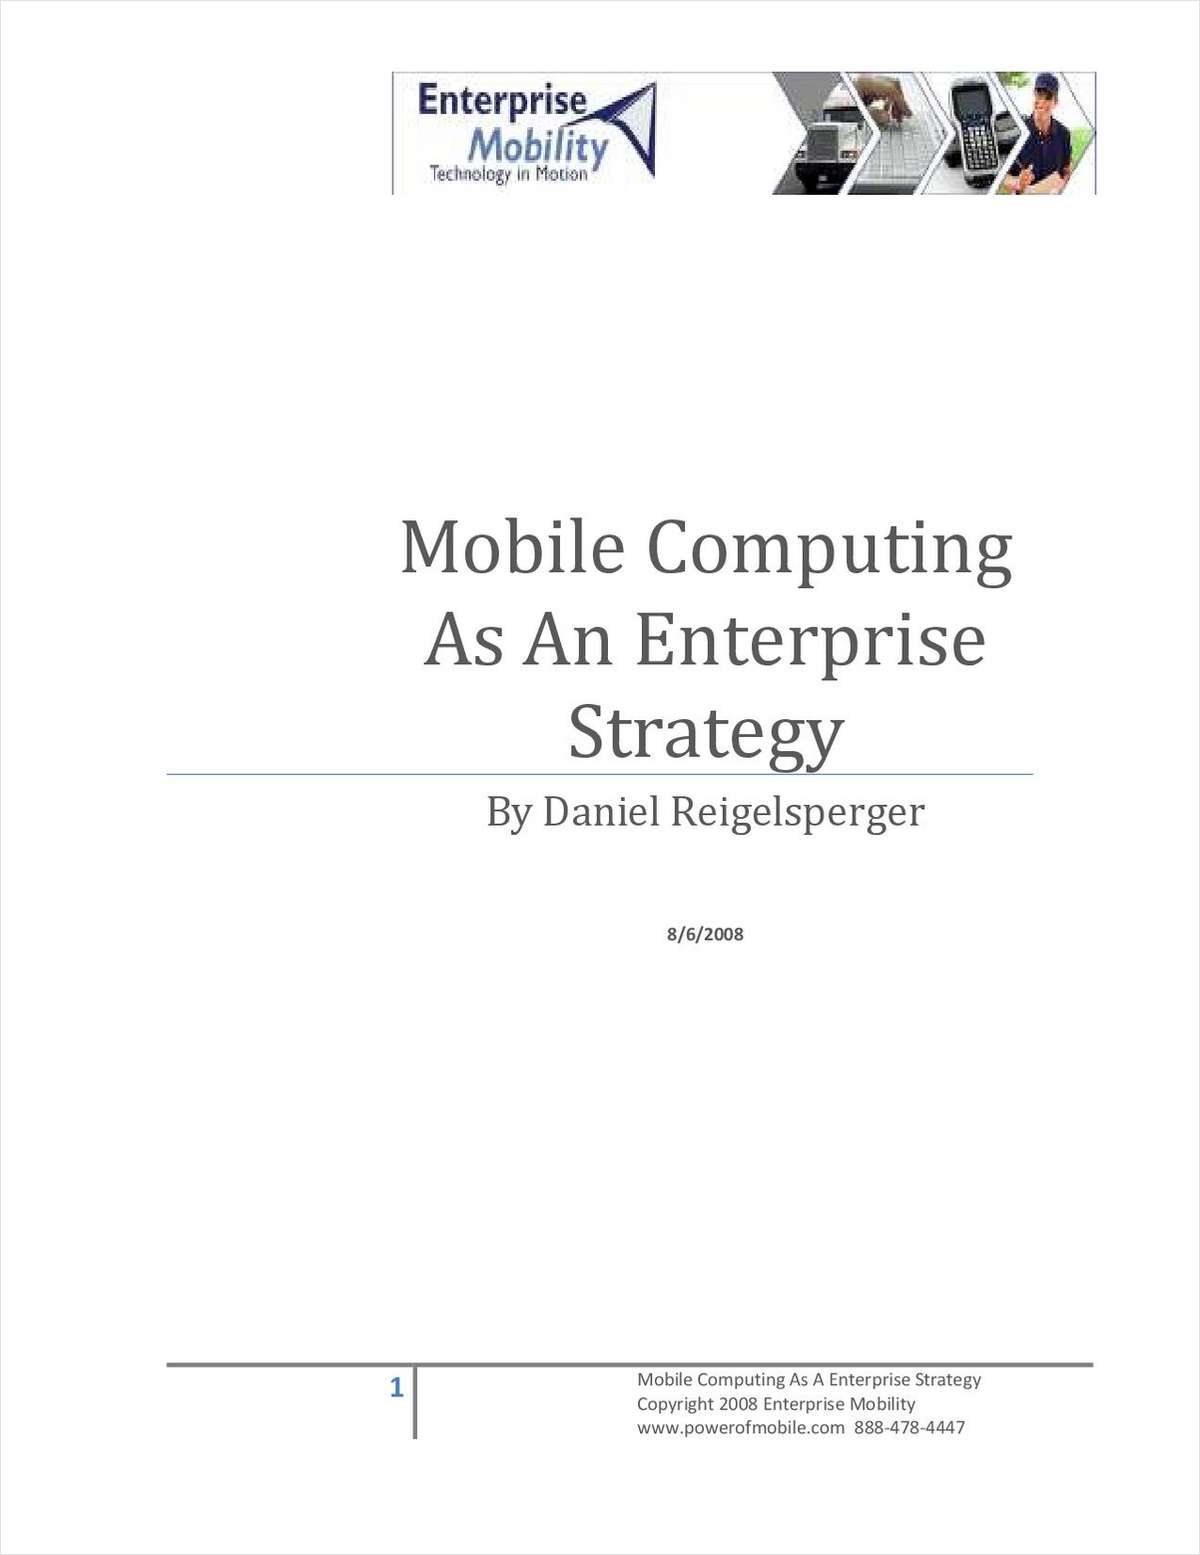 Mobile Computing as a Strategy